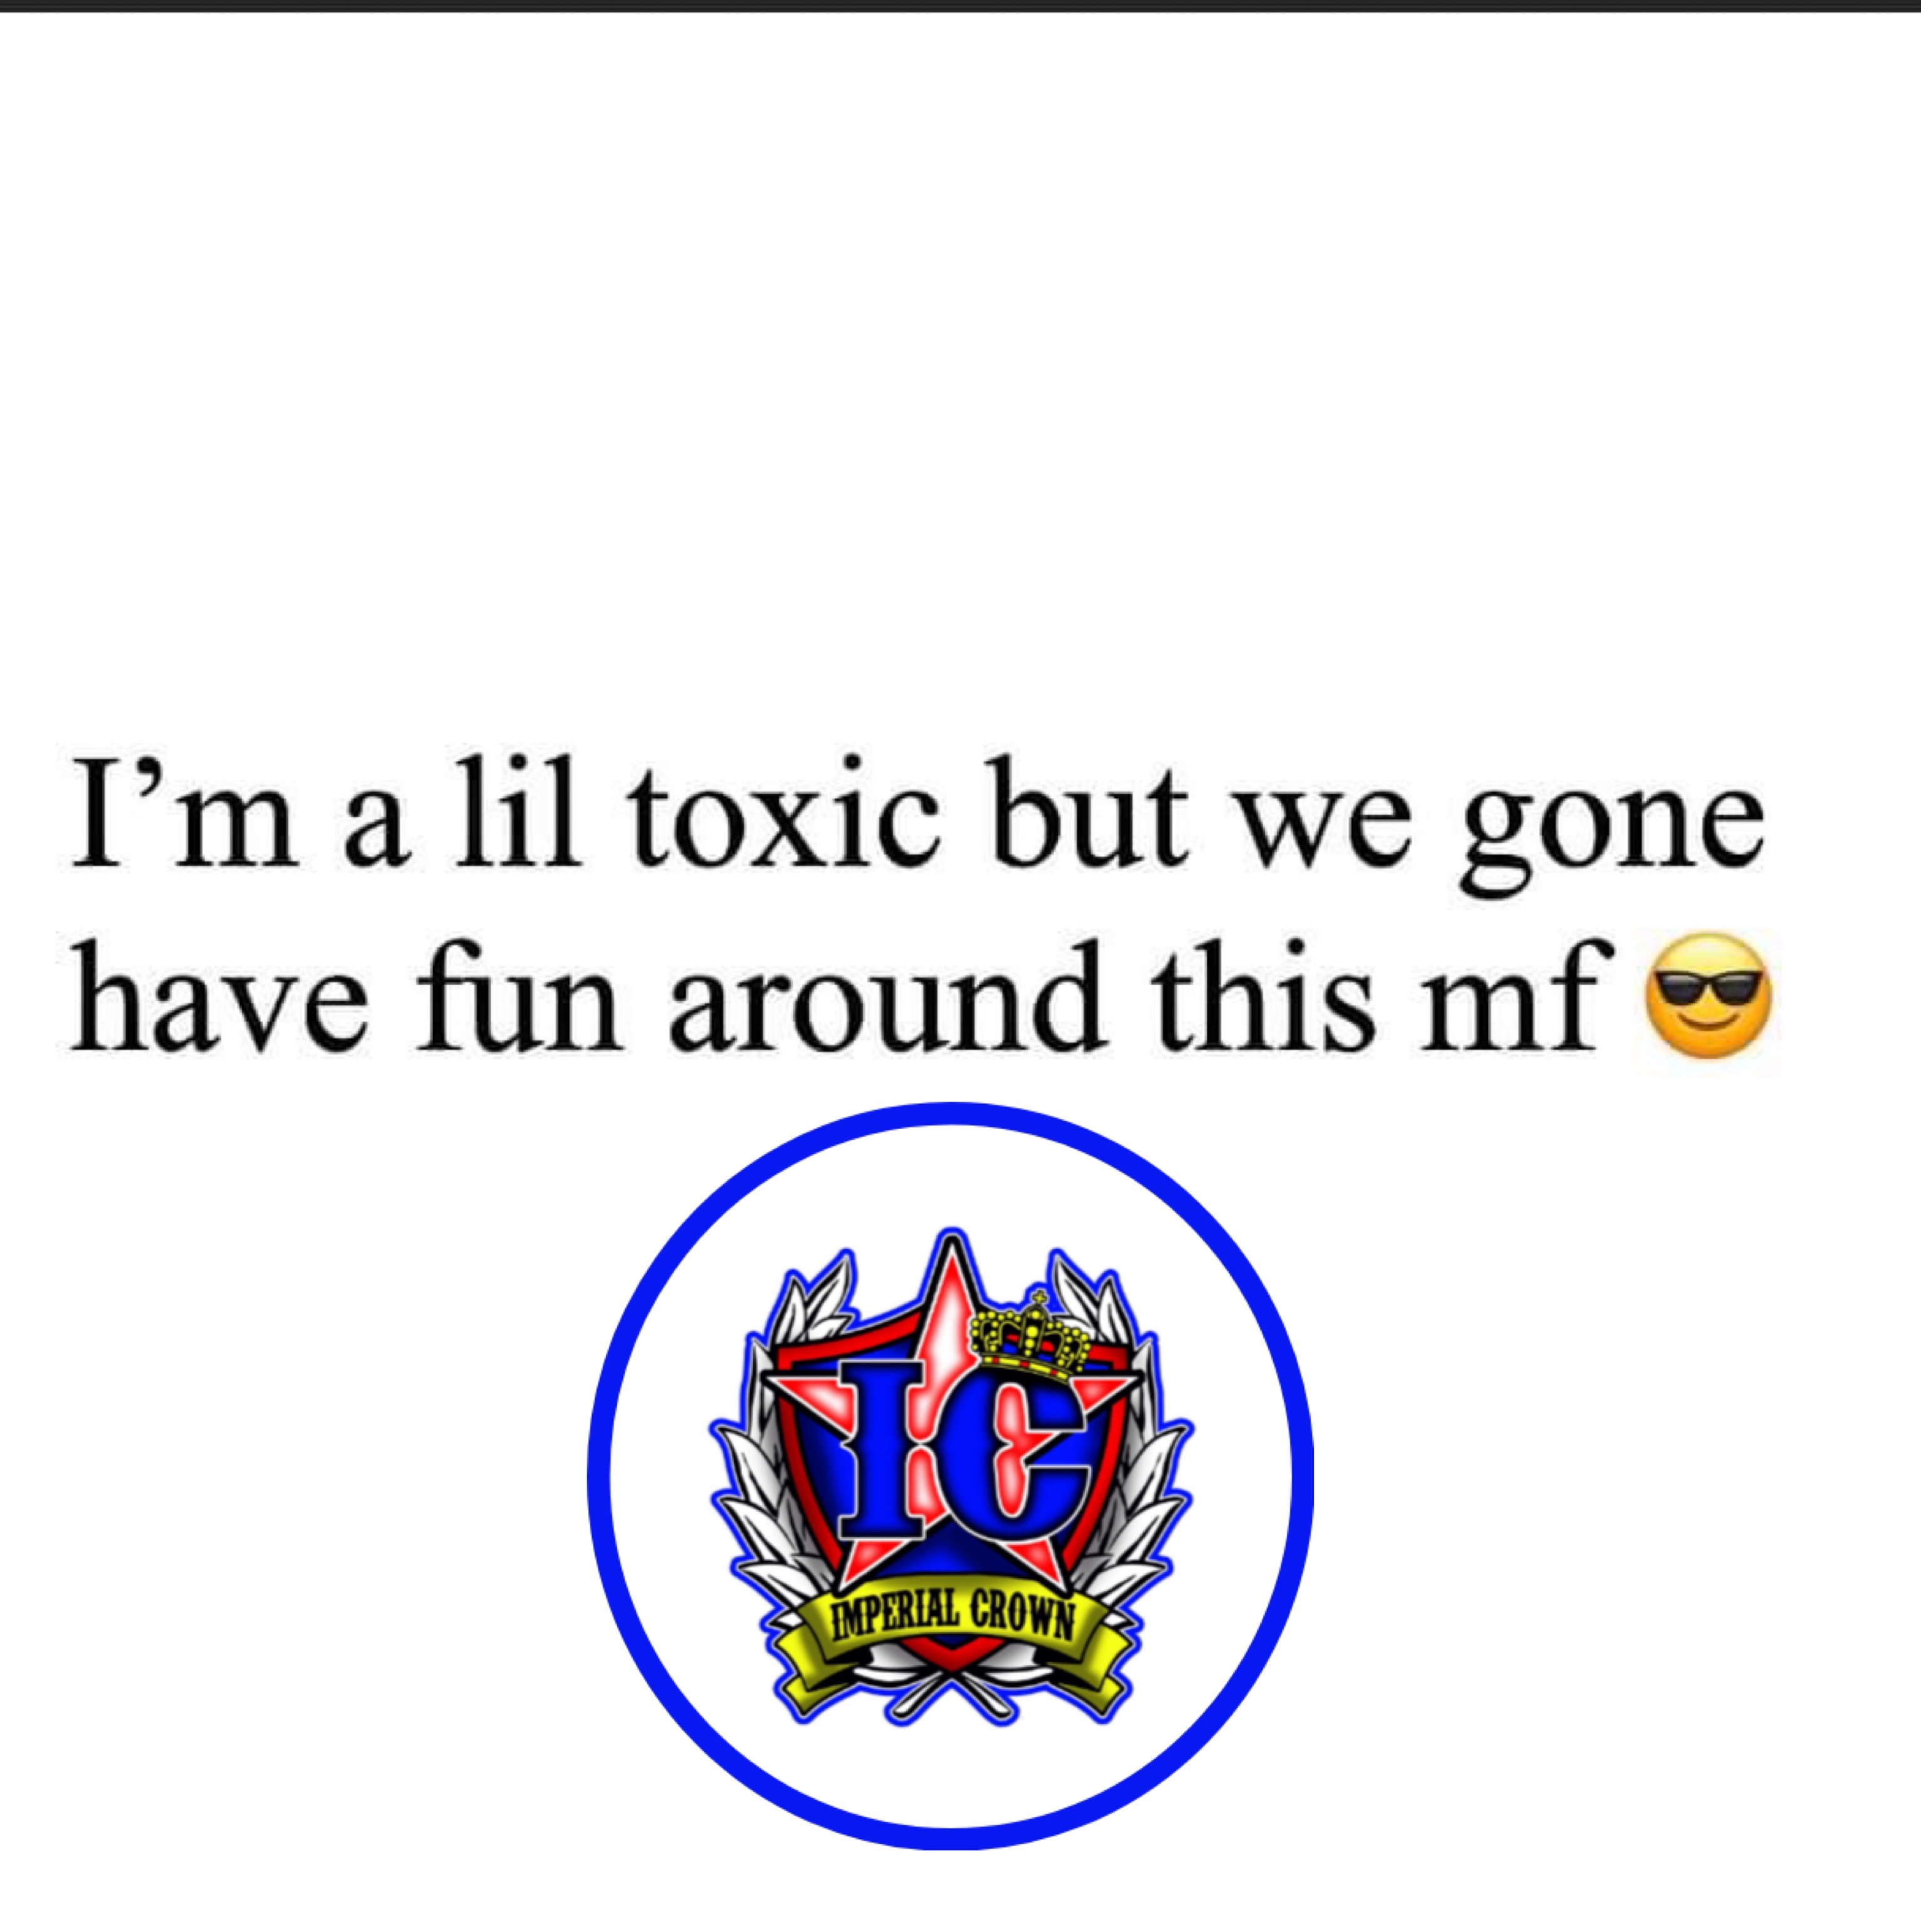 Im a lil toxic but we gone have fun around this mf